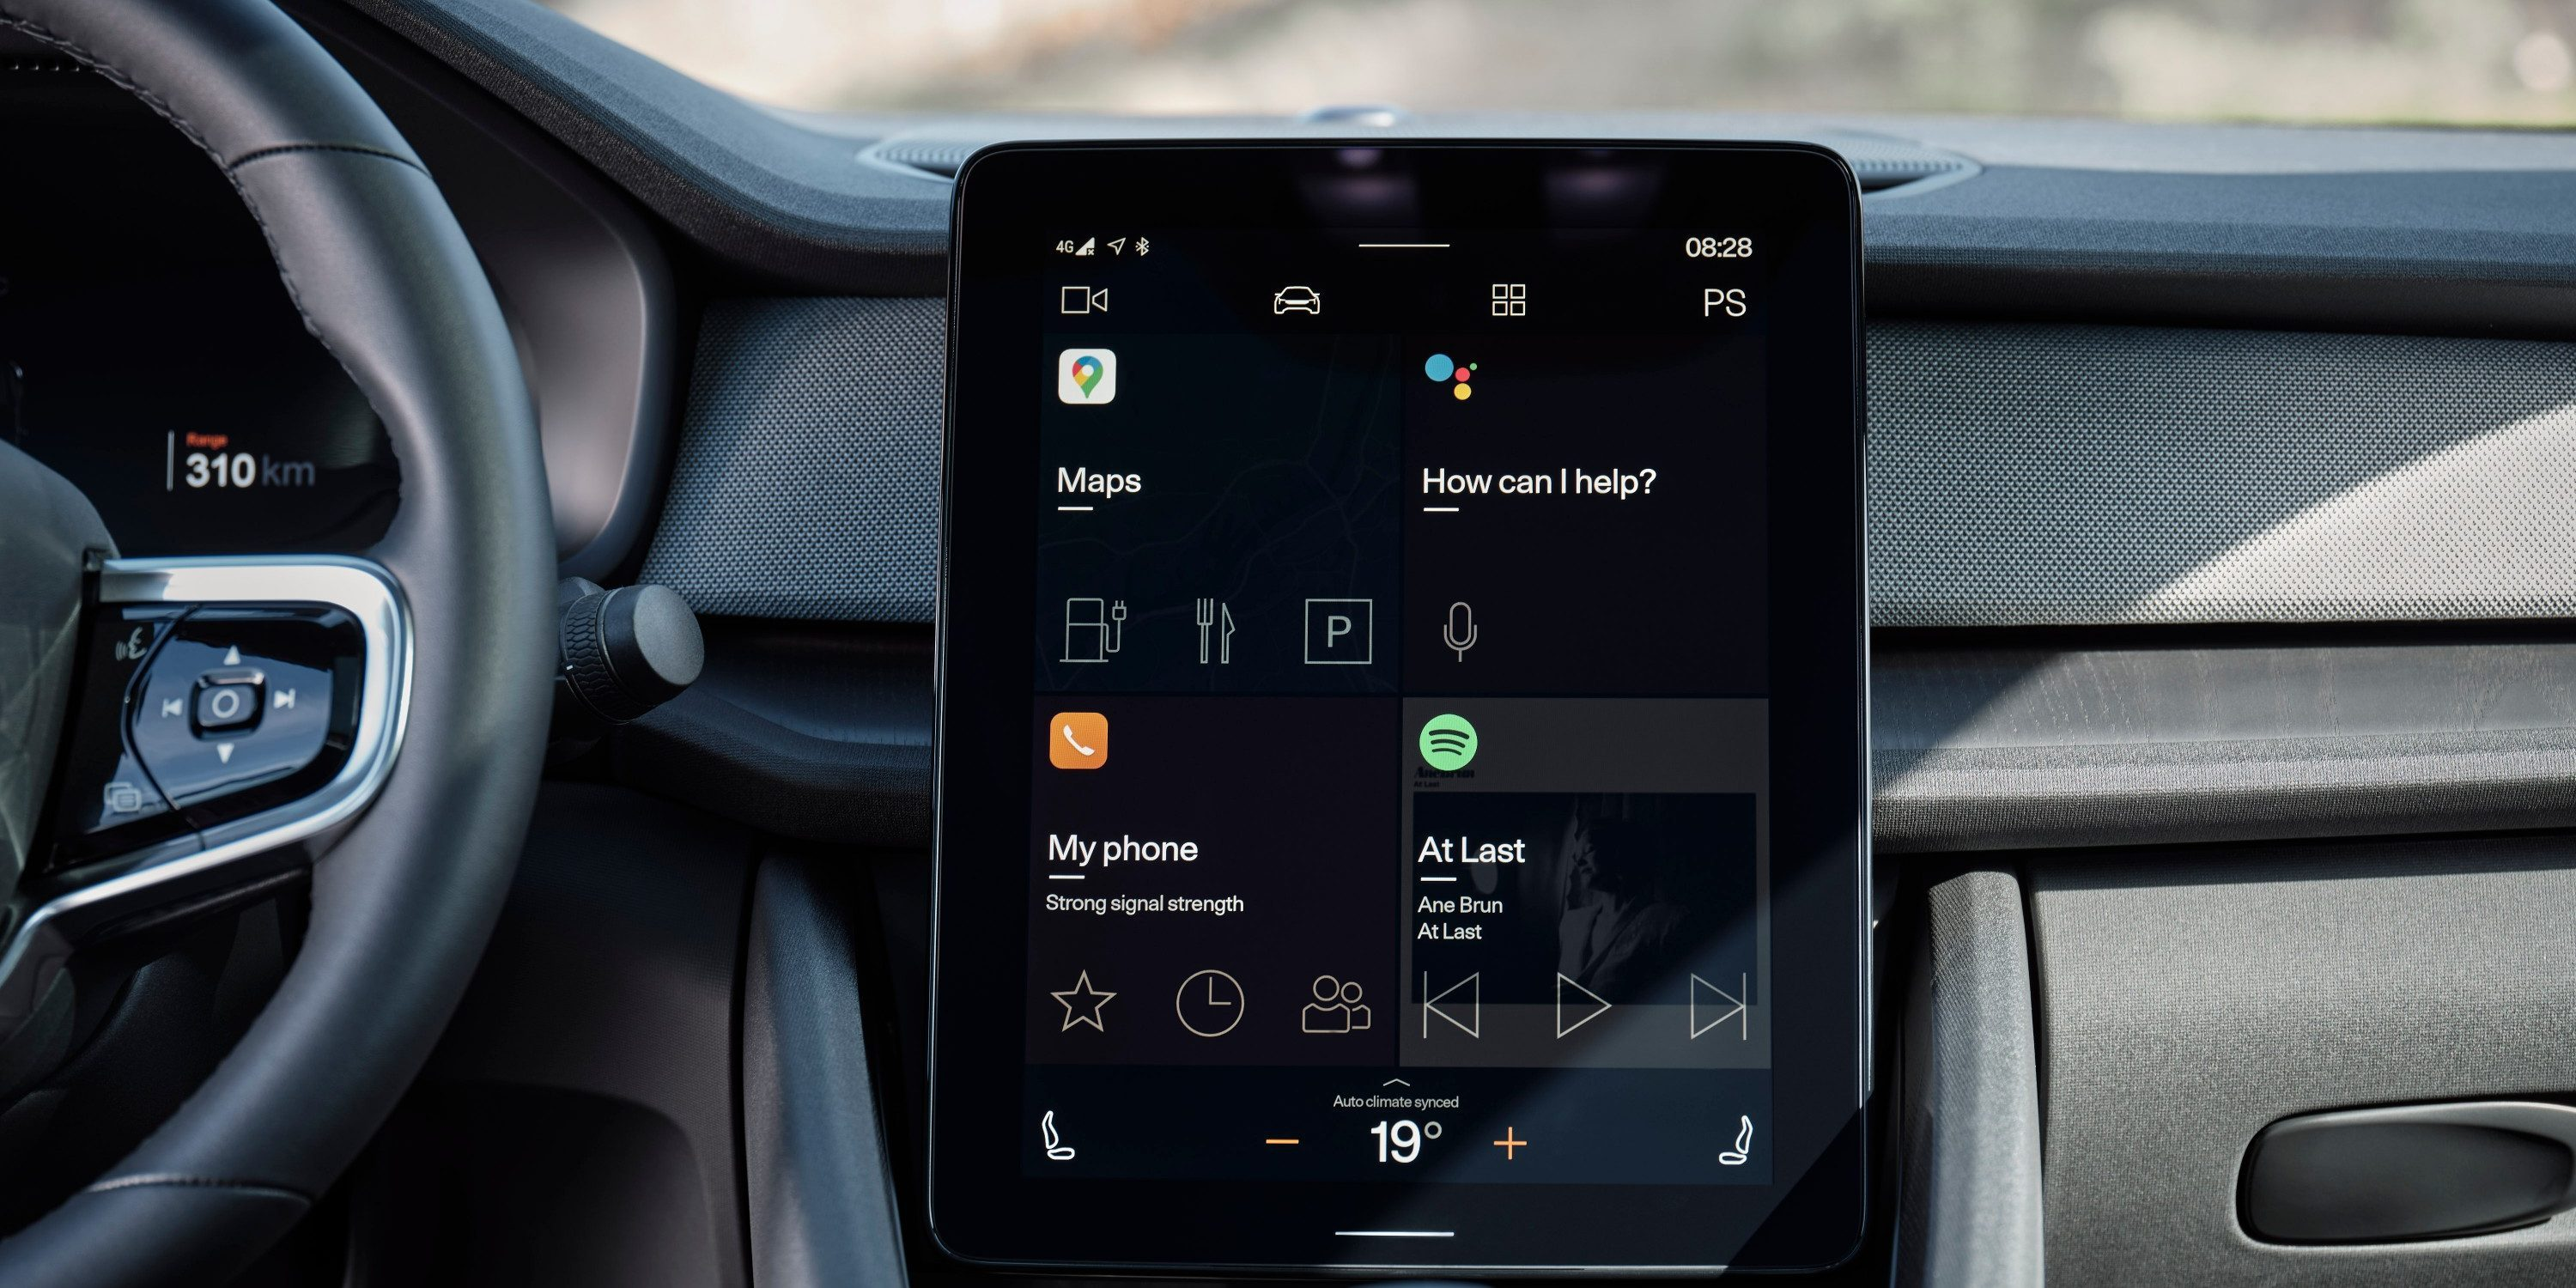 Google launches Android Automotive support page for Maps